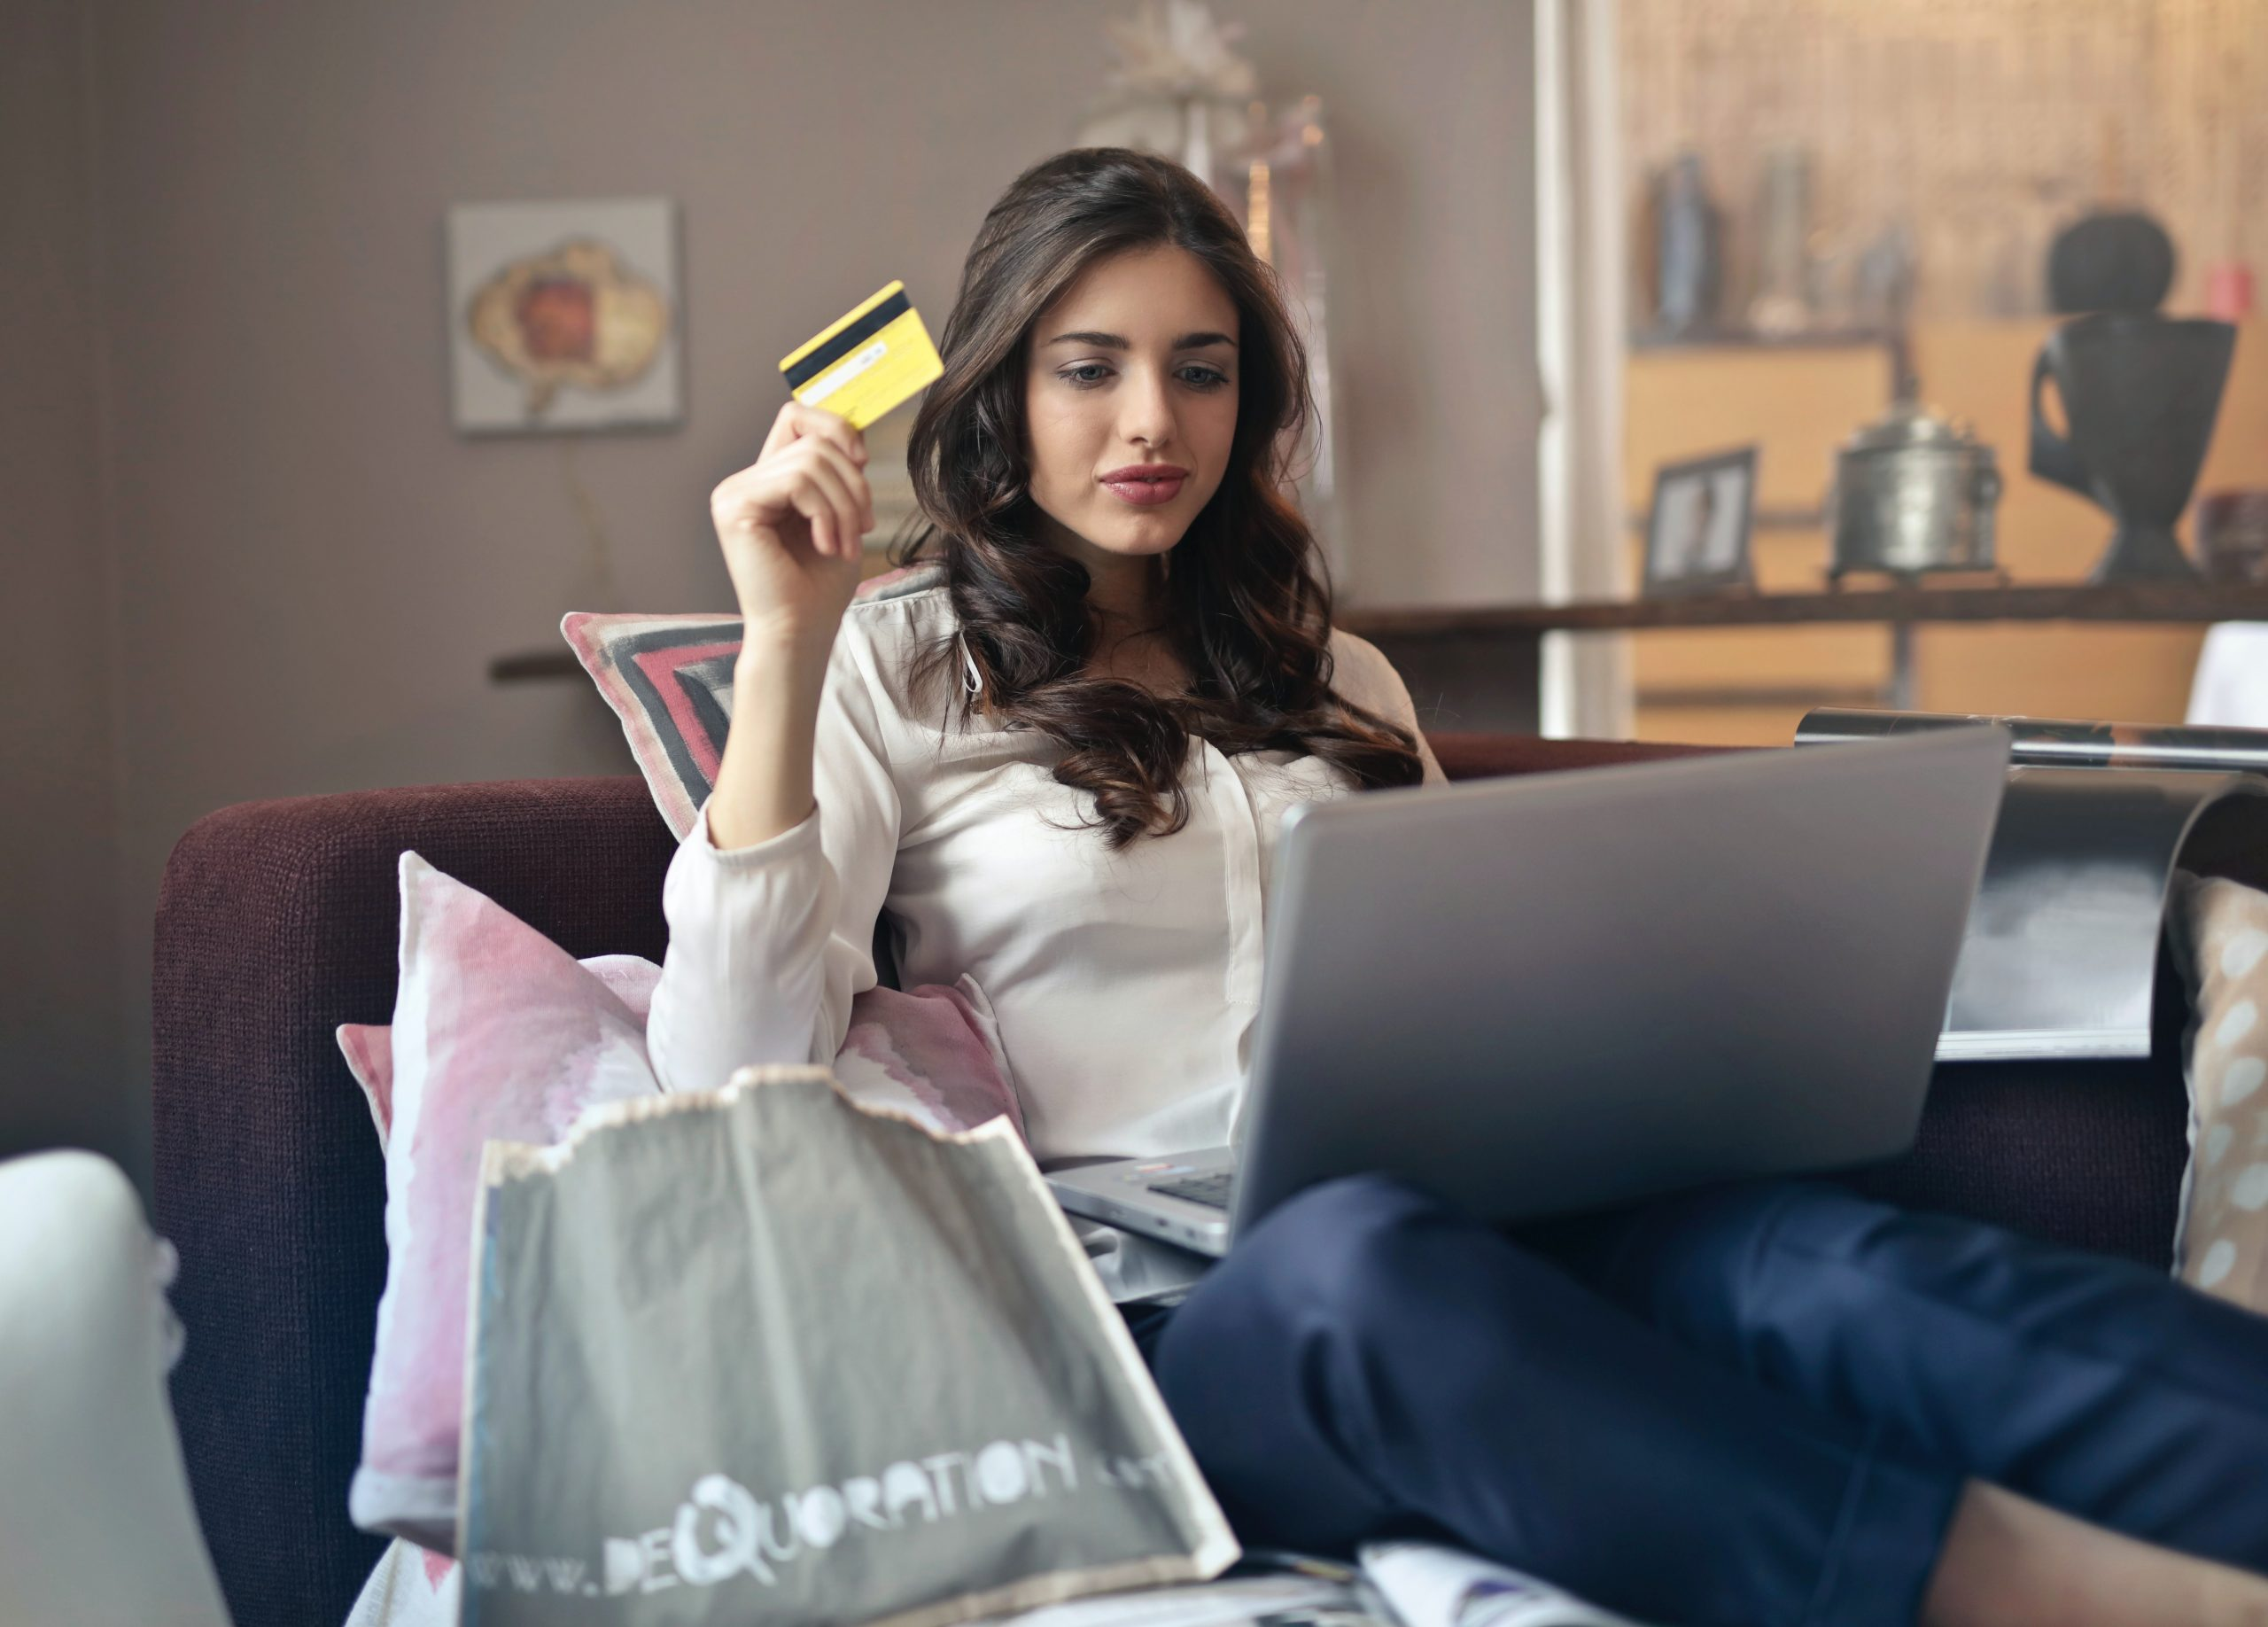 woman shopping on computer holding up gift card